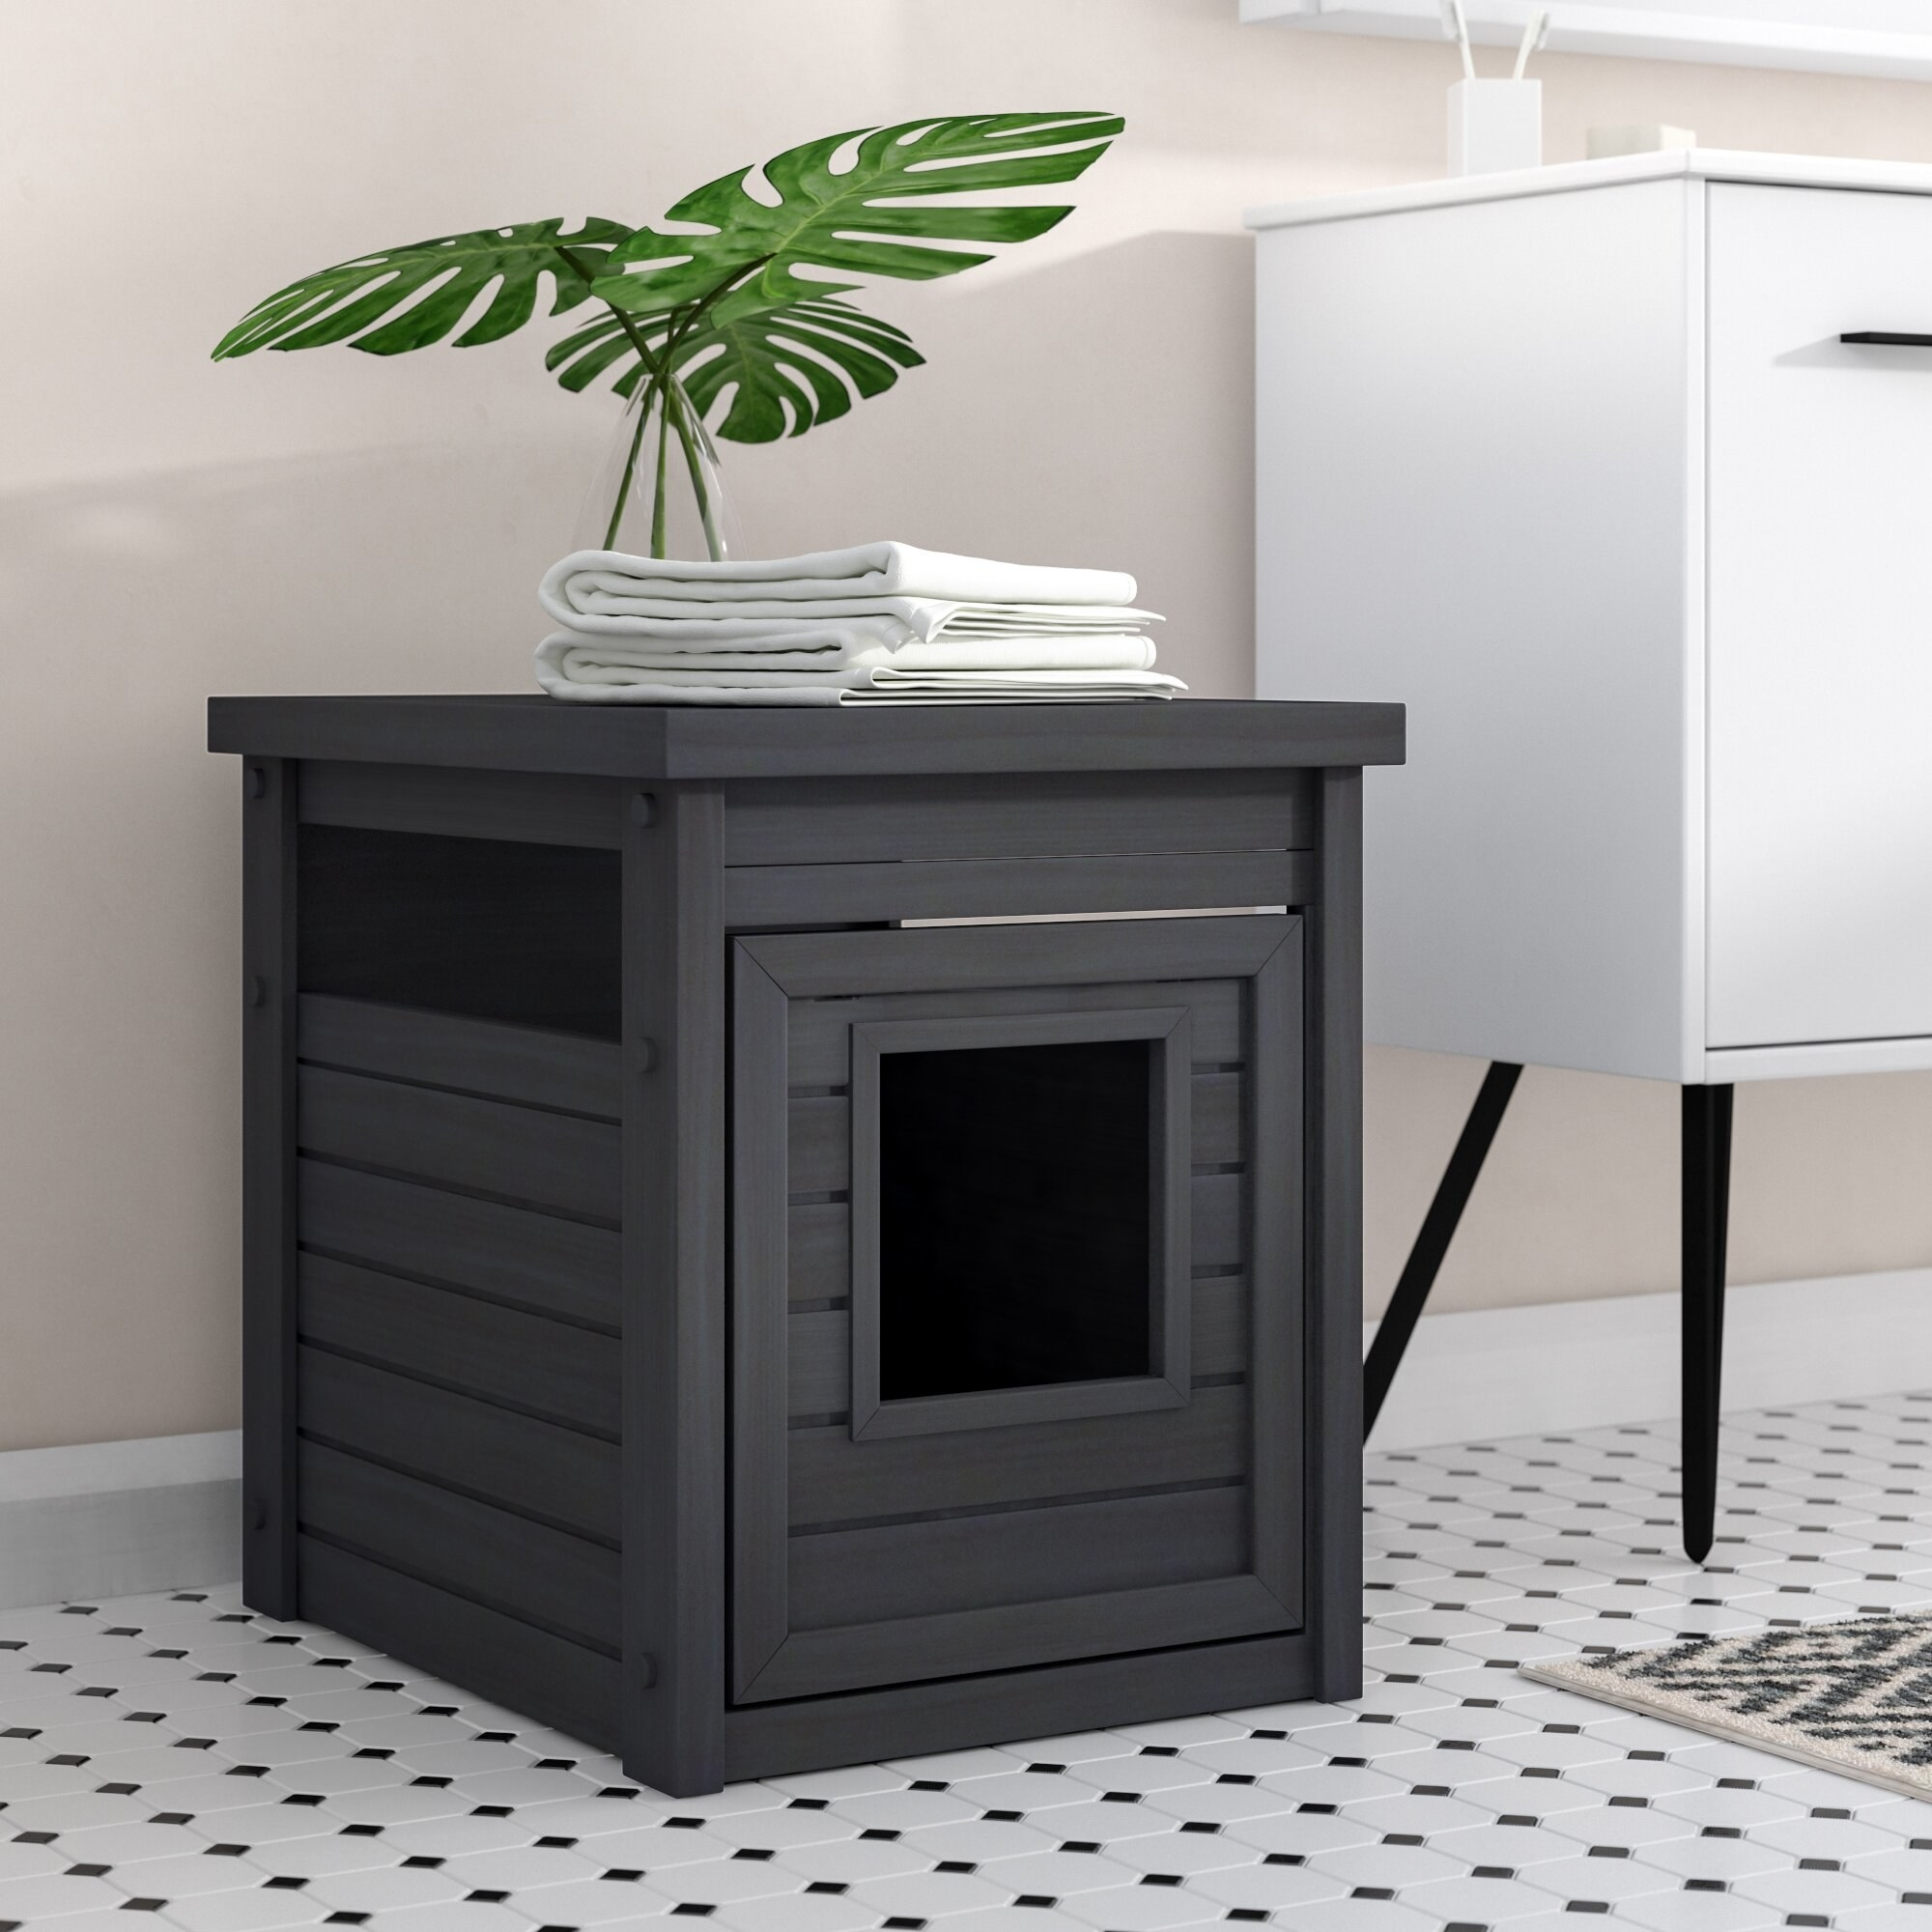 A black litter box that looks like an end table with a plant on top